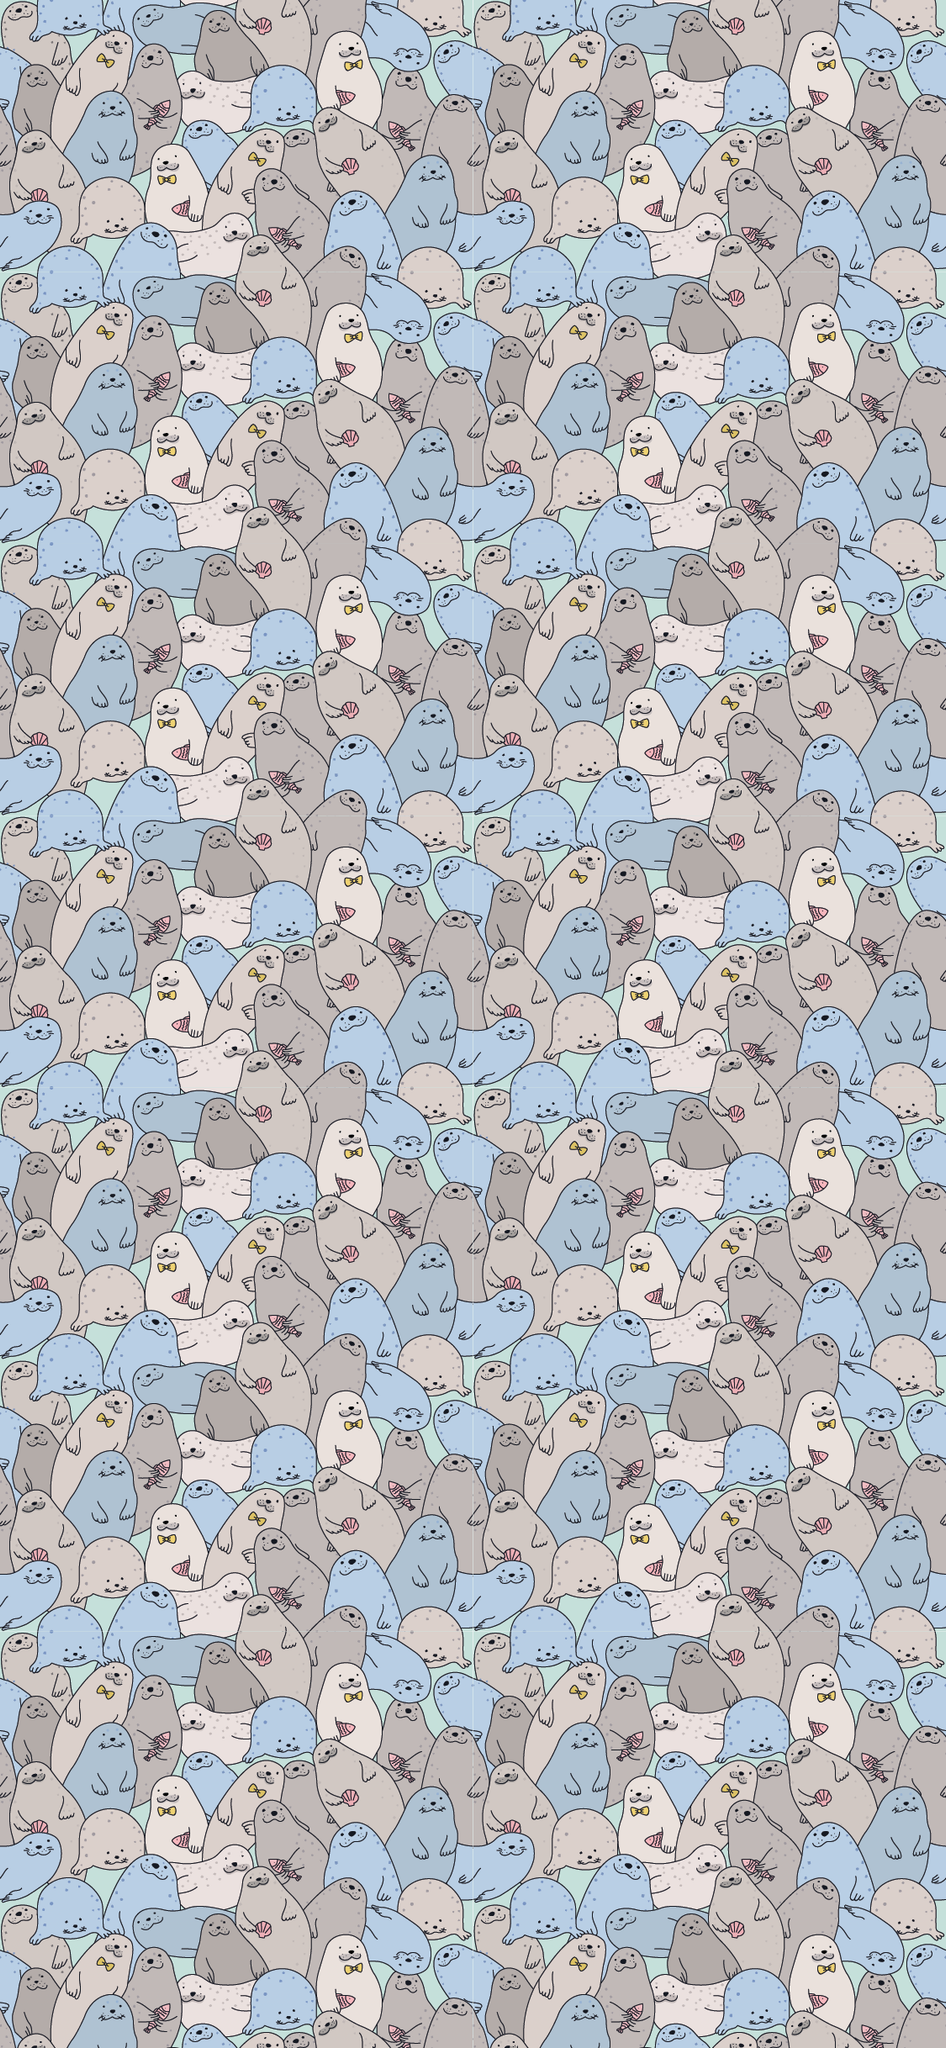 Seals Wallpaper by Dr Woof Apparel